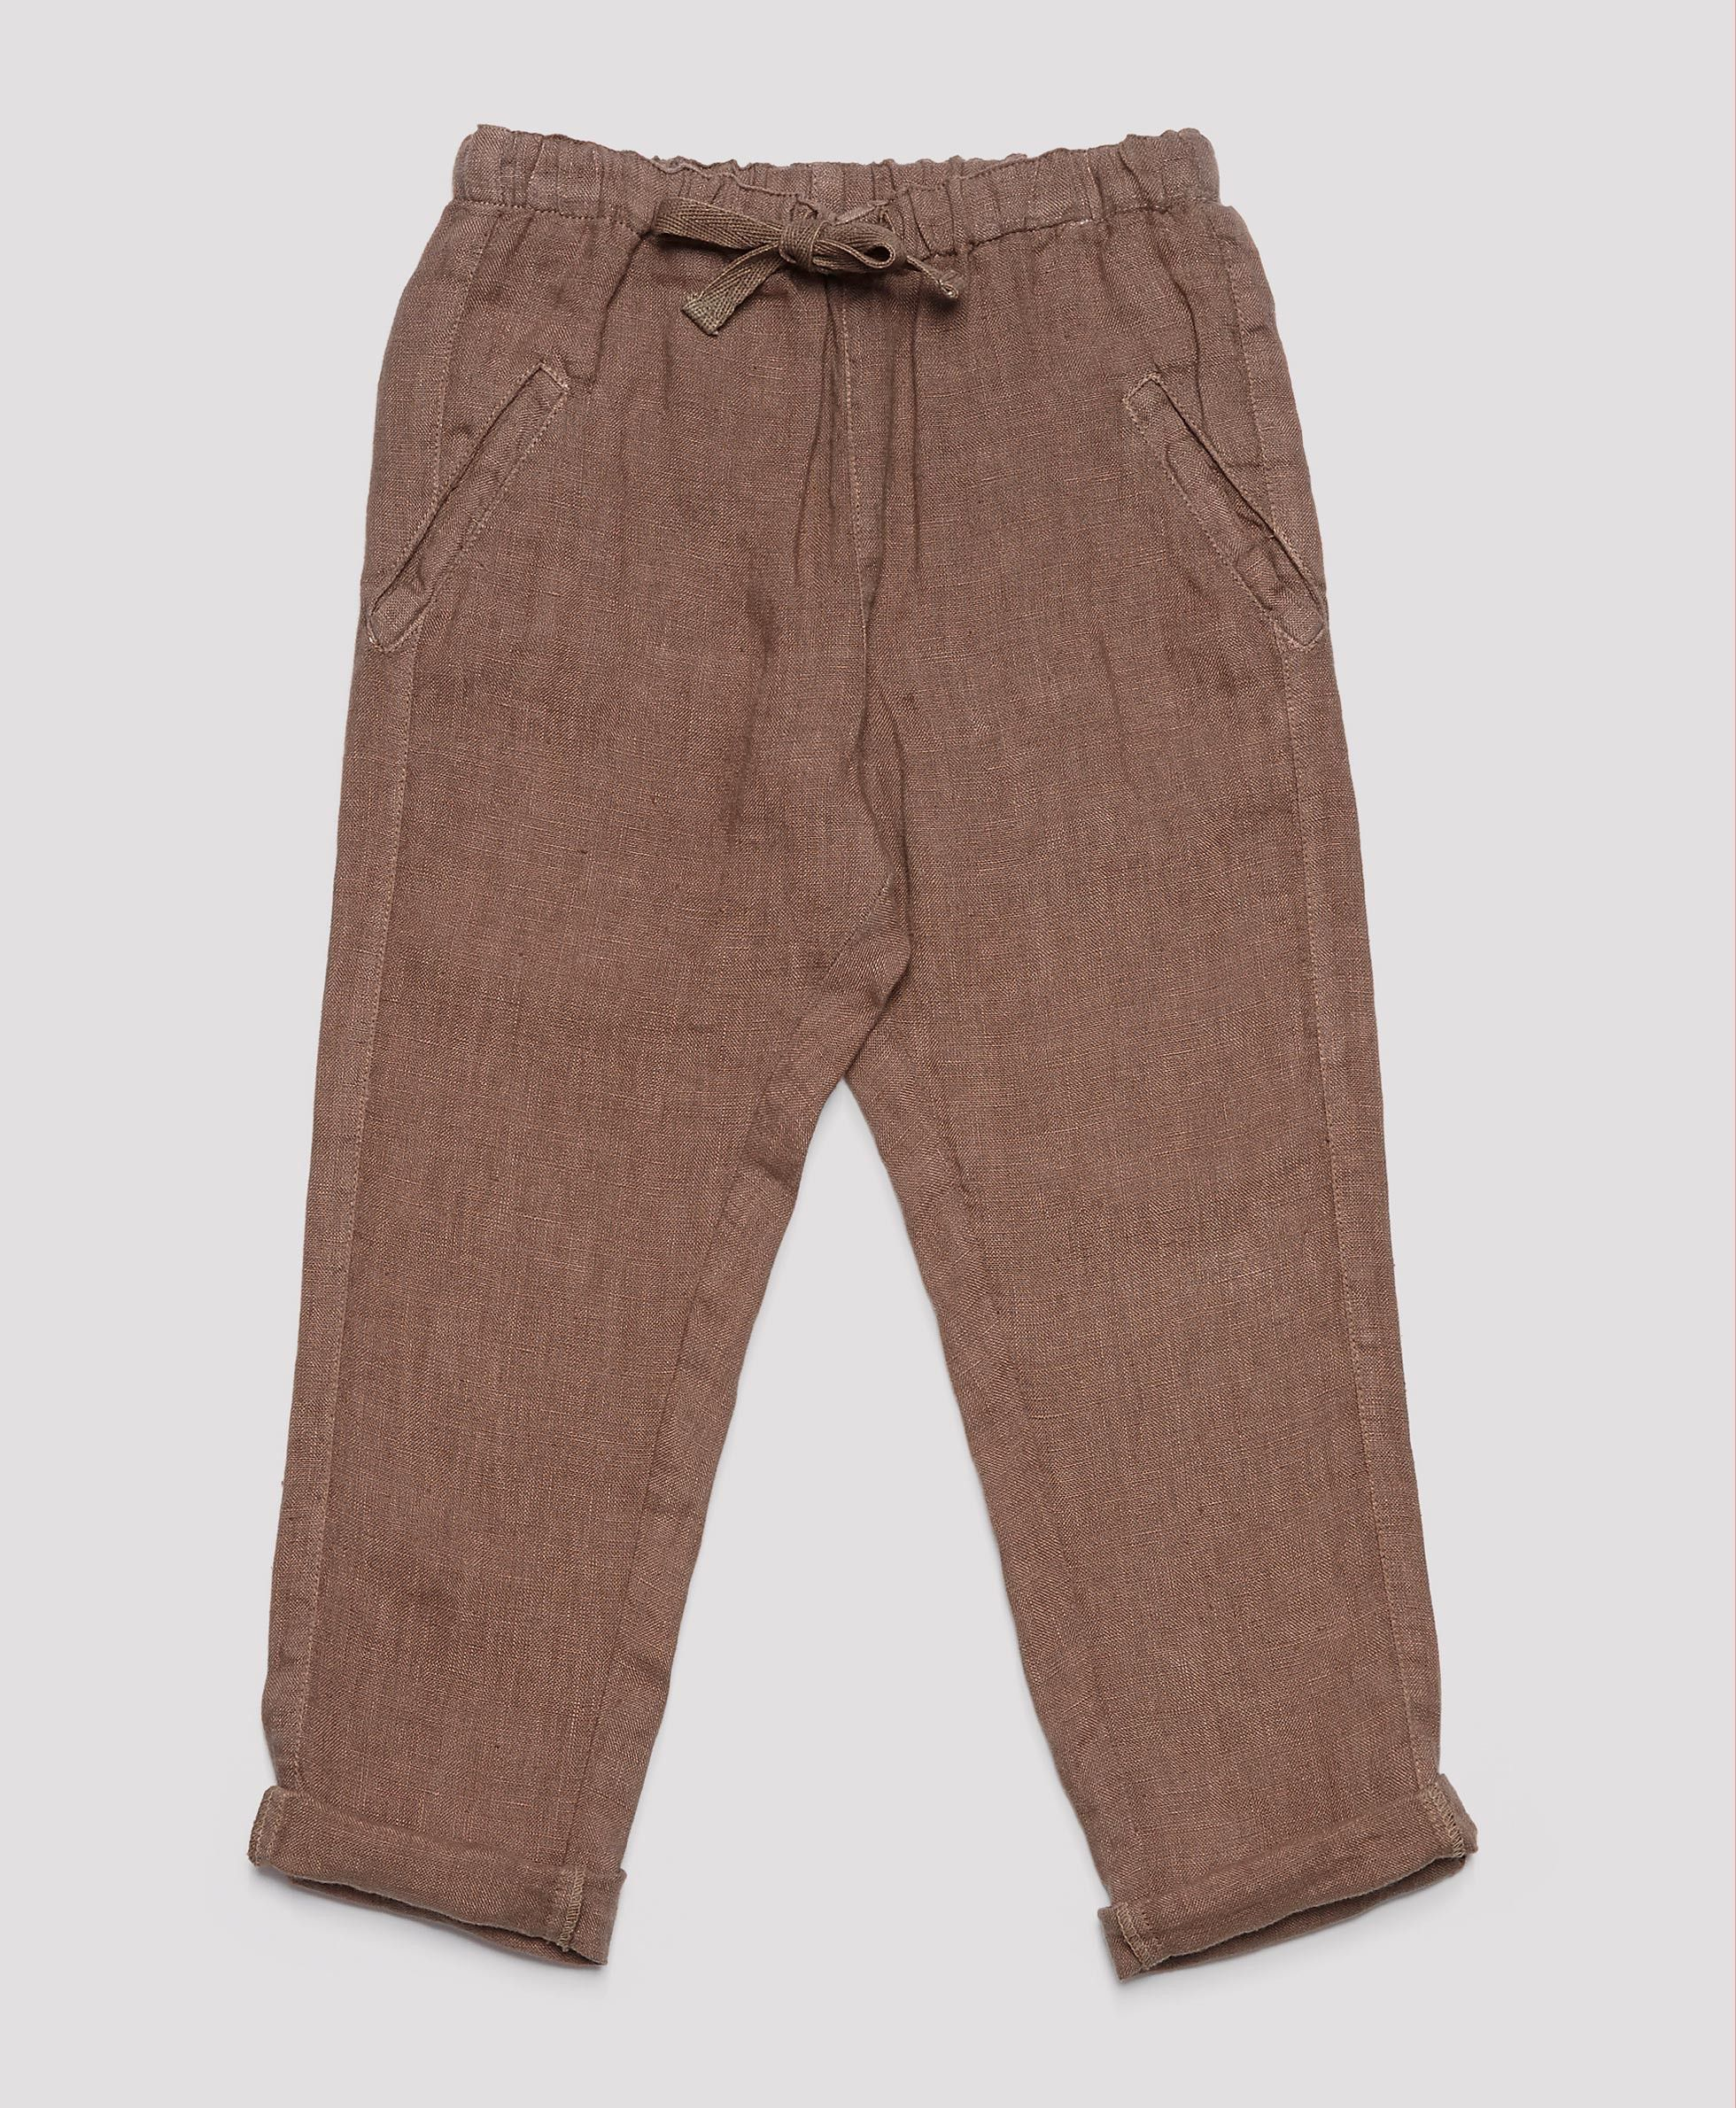 cfd70443a0d Boys Trousers   Caramel Baby & Child   B o y s f a s h i o n ...